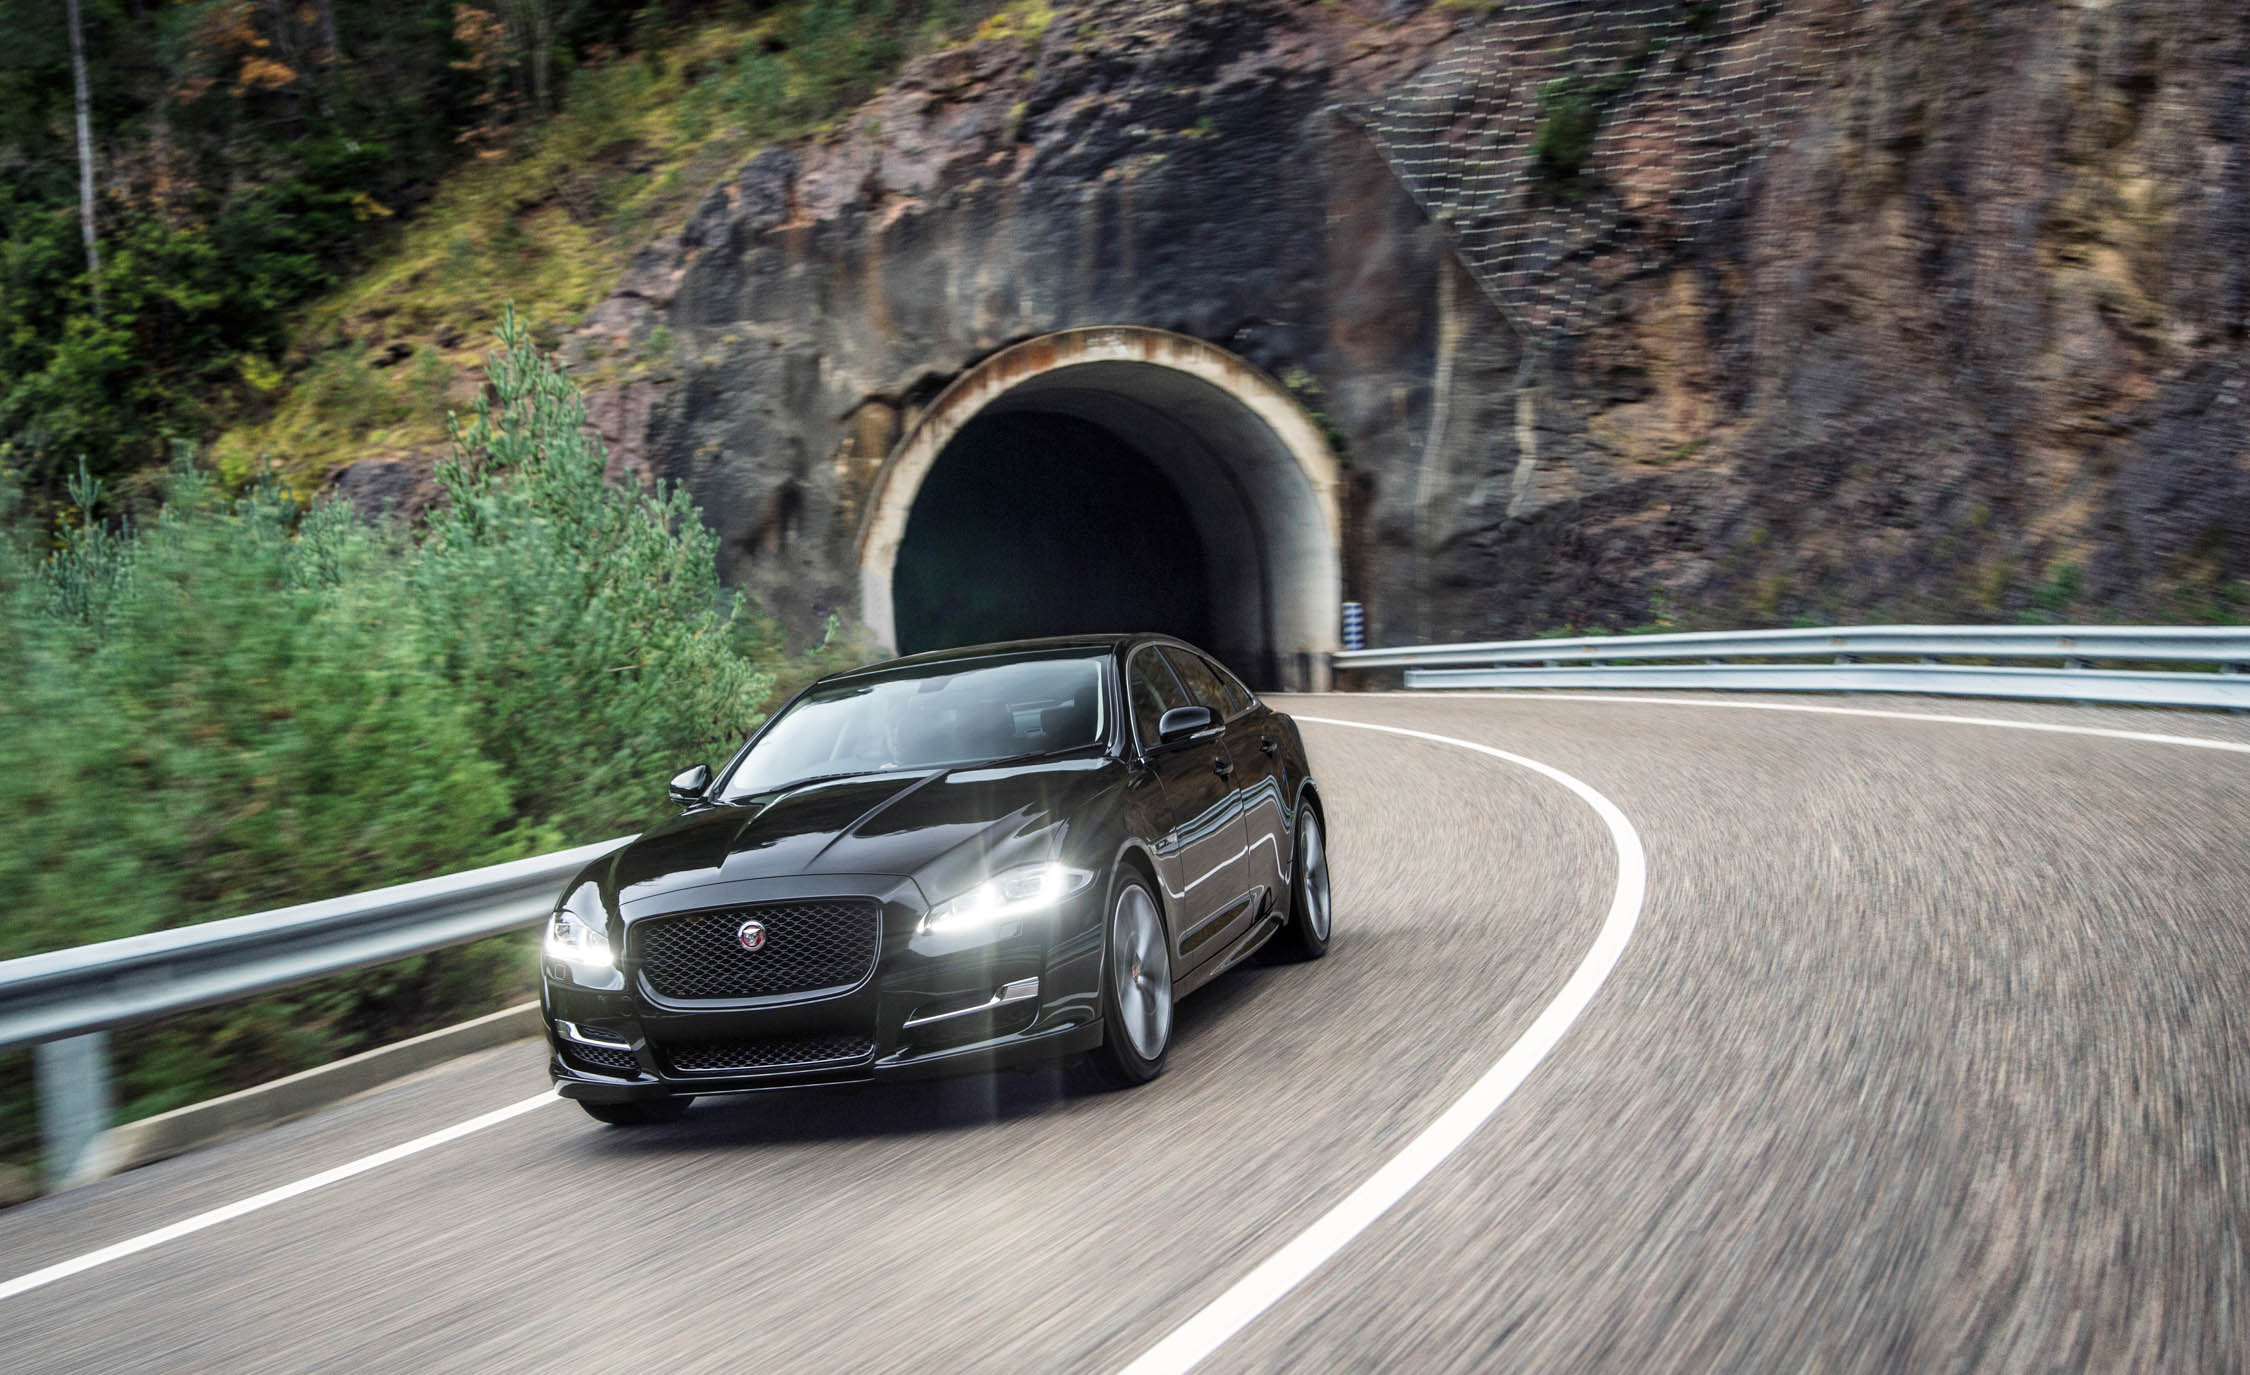 2016 Jaguar XJ (View 9 of 19)